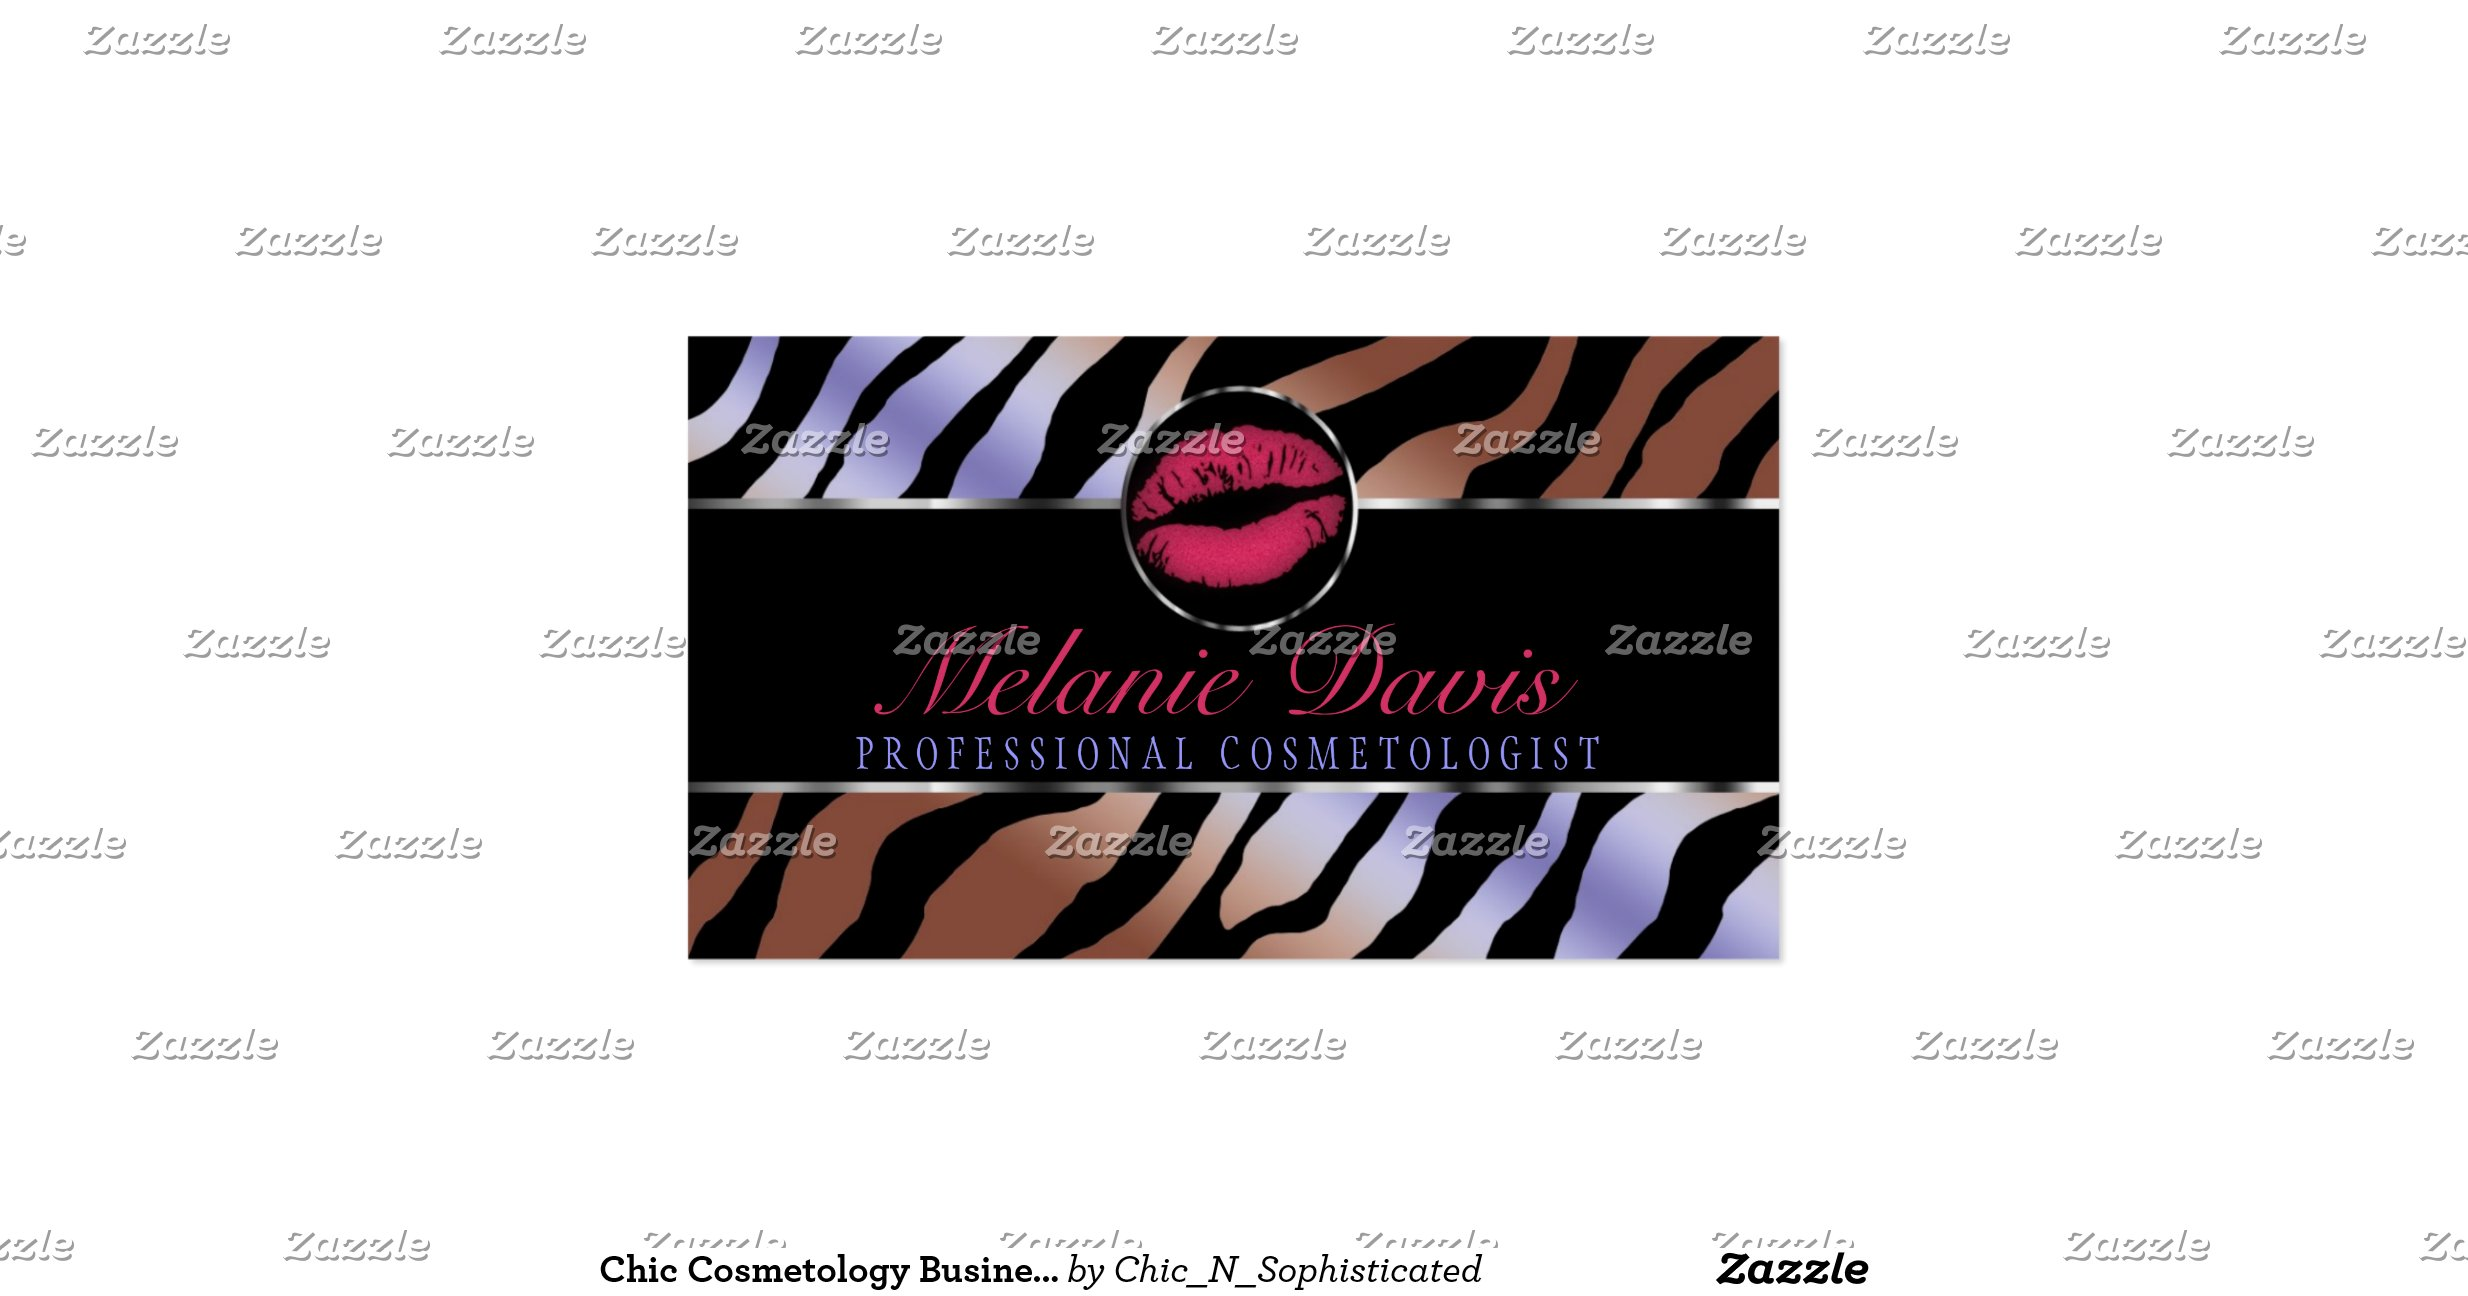 Cosmetologist business cards militaryalicious cosmetologist business cards reheart Gallery